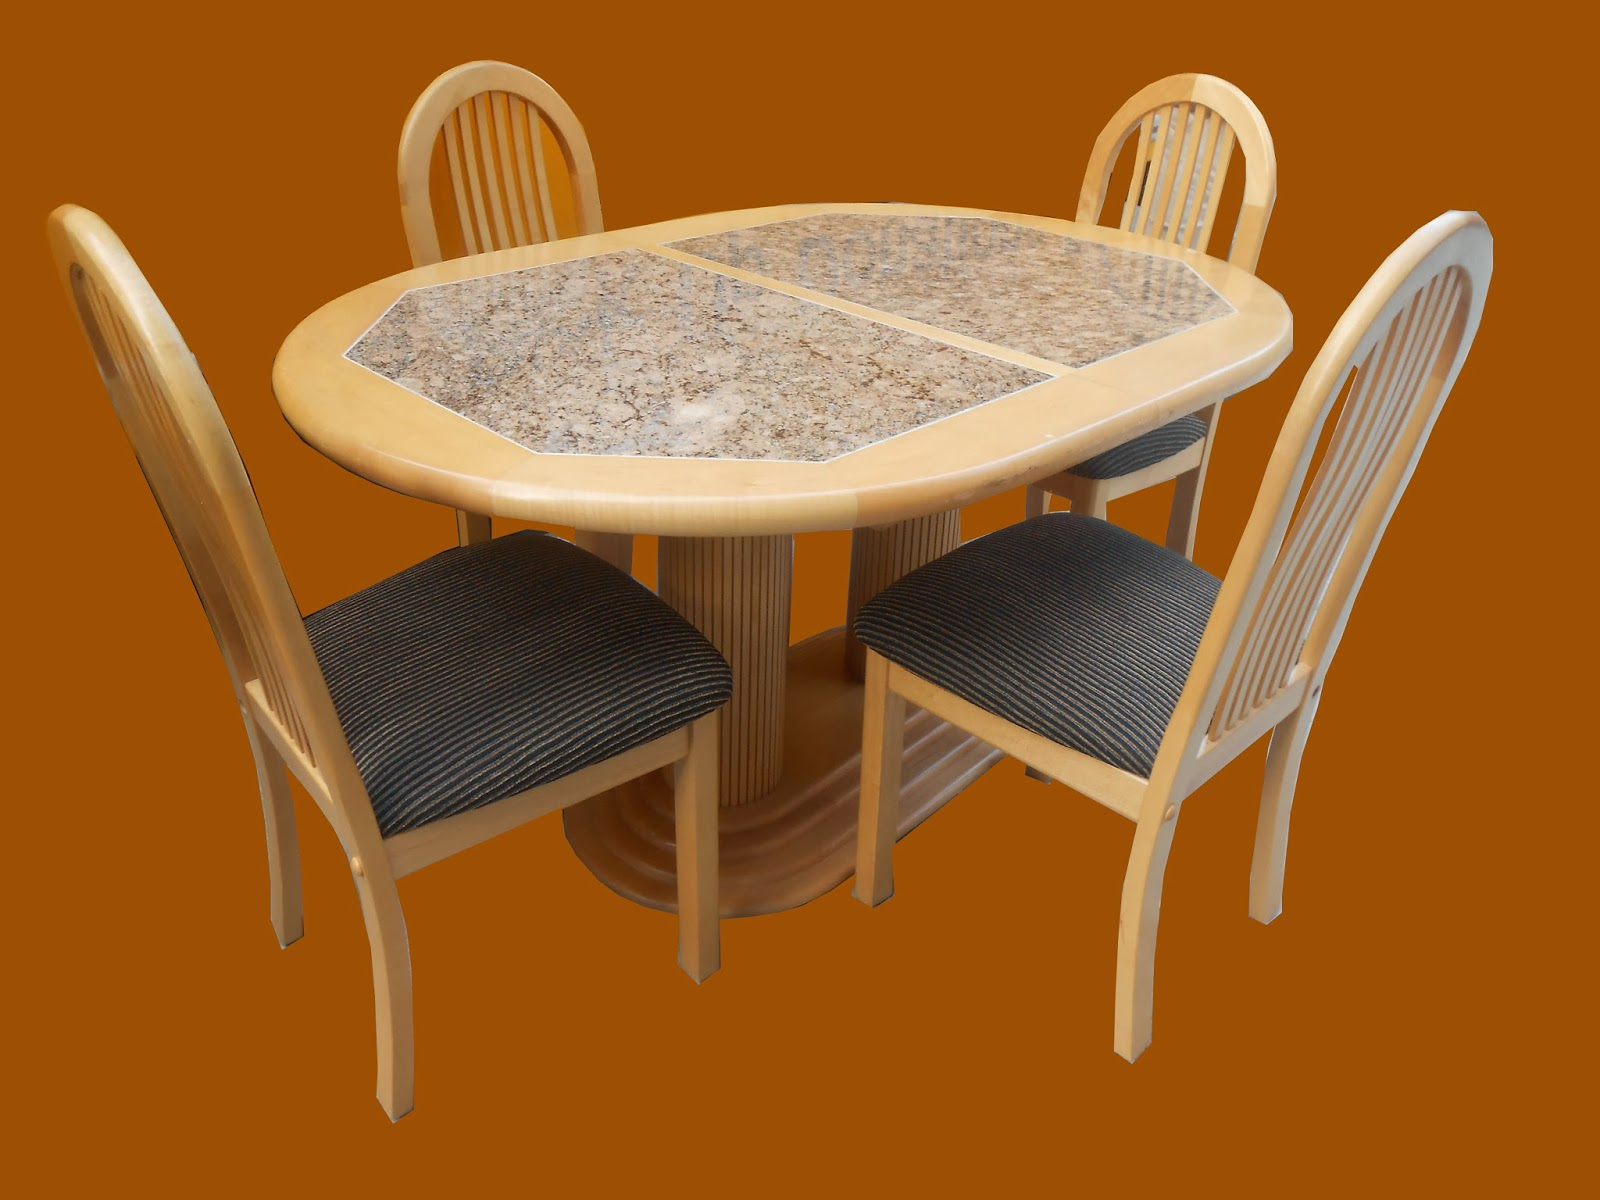 uhuru furniture collectibles round dining table with 4 chairs